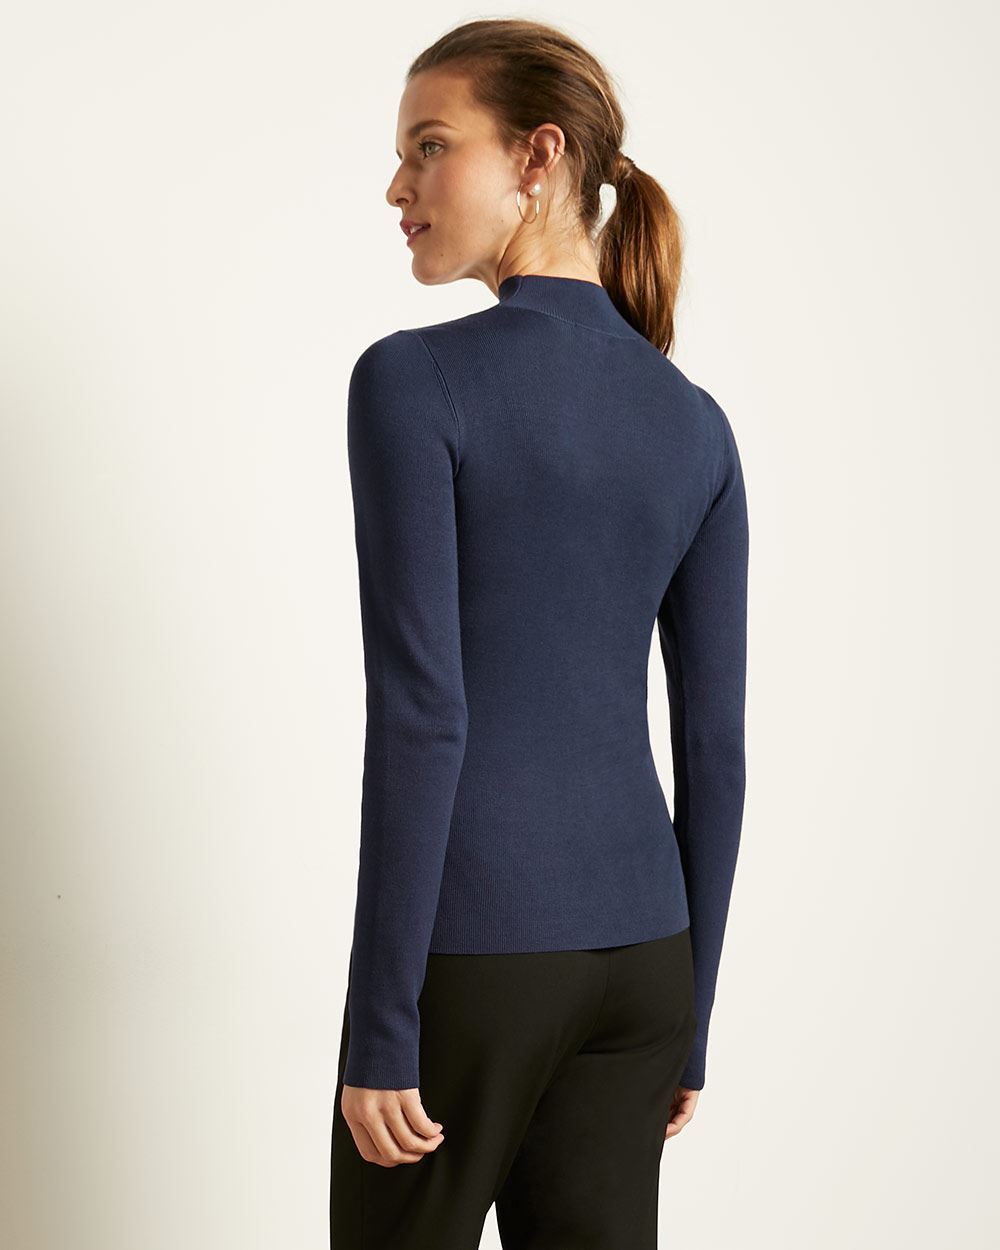 Fitted Ribbed Knit Sweater with Front Cut Out